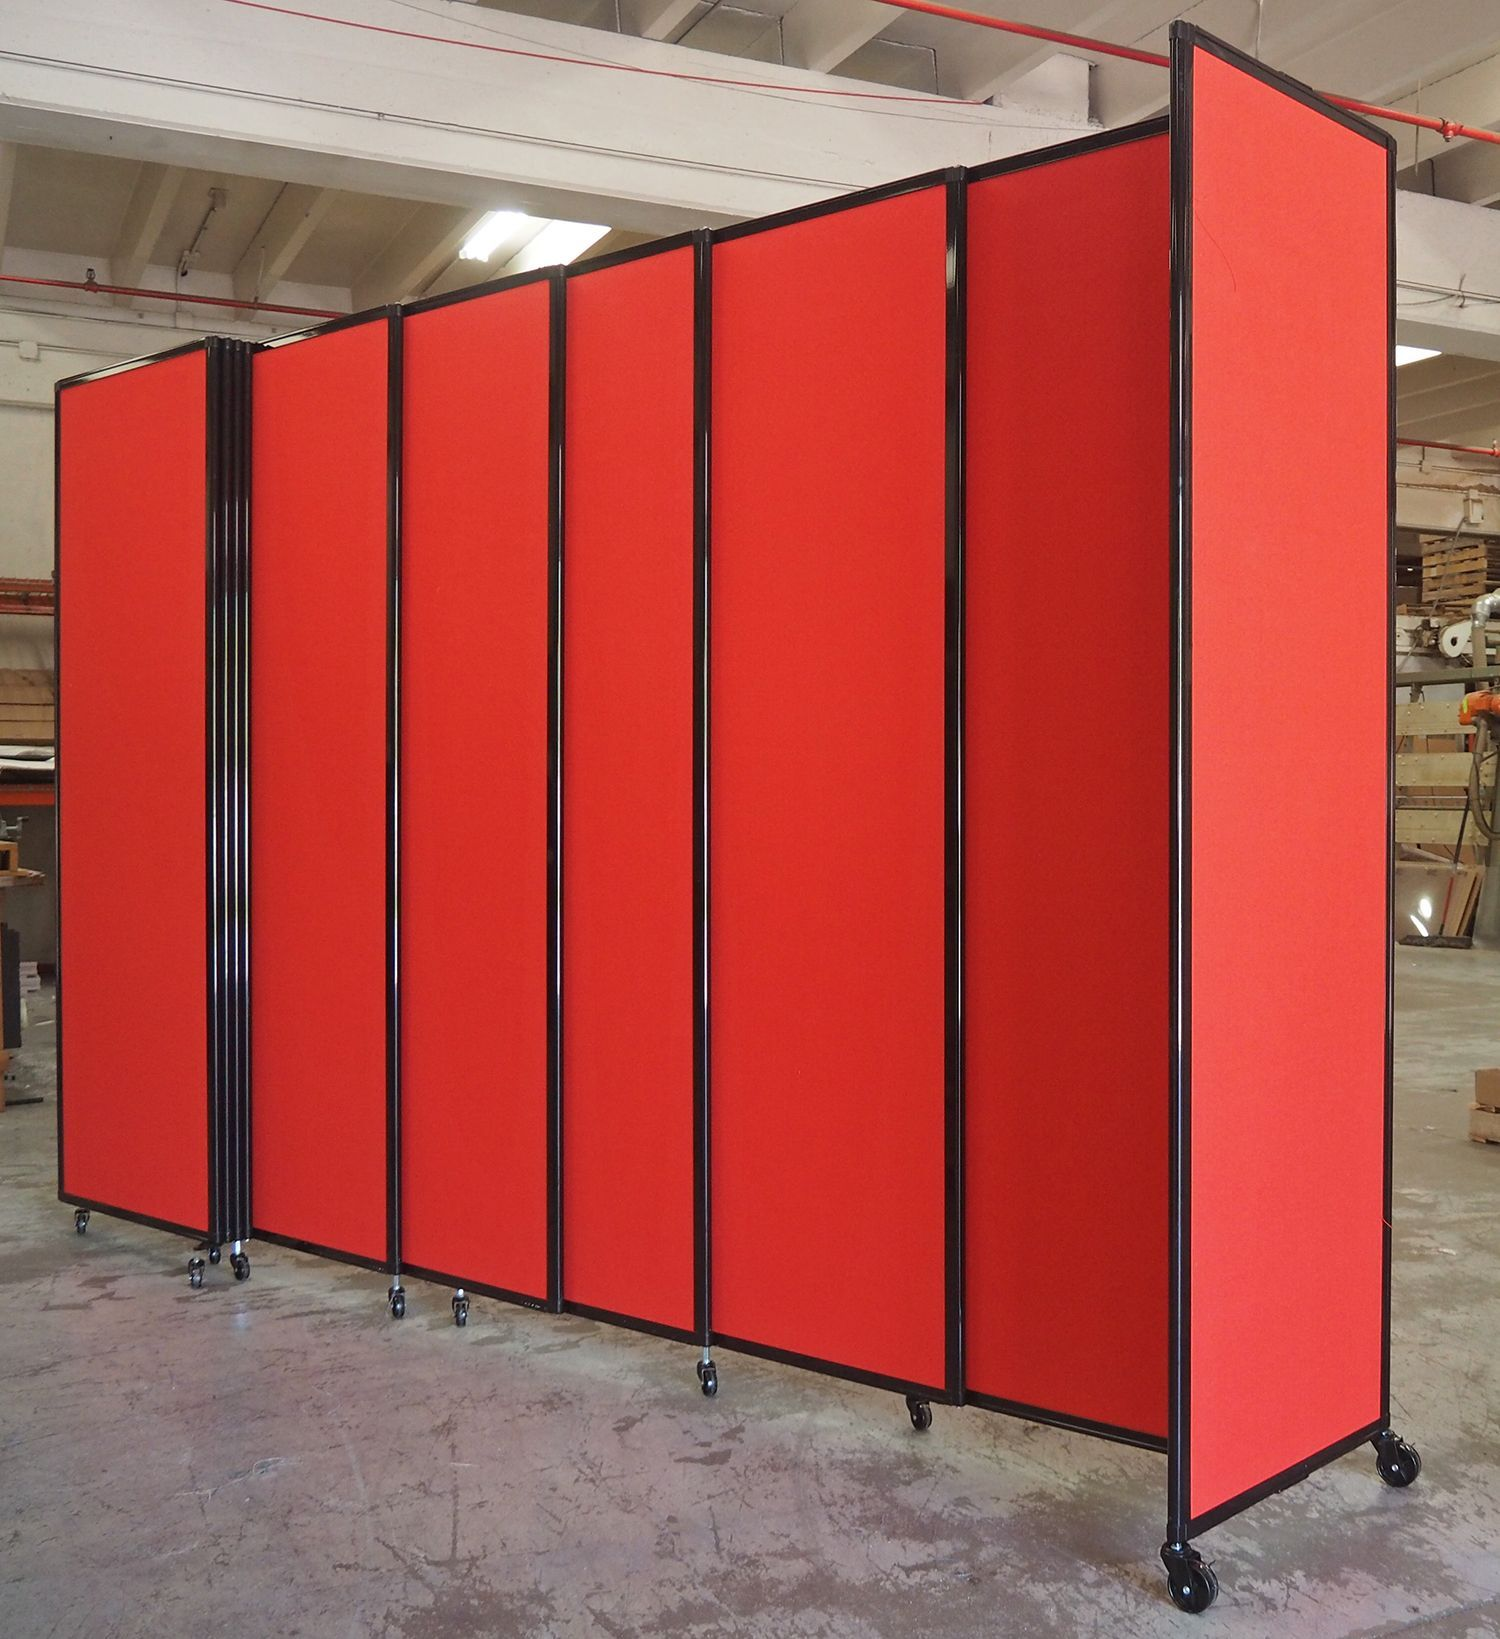 Hereus a slick red straightwall wallmount we just finished up and